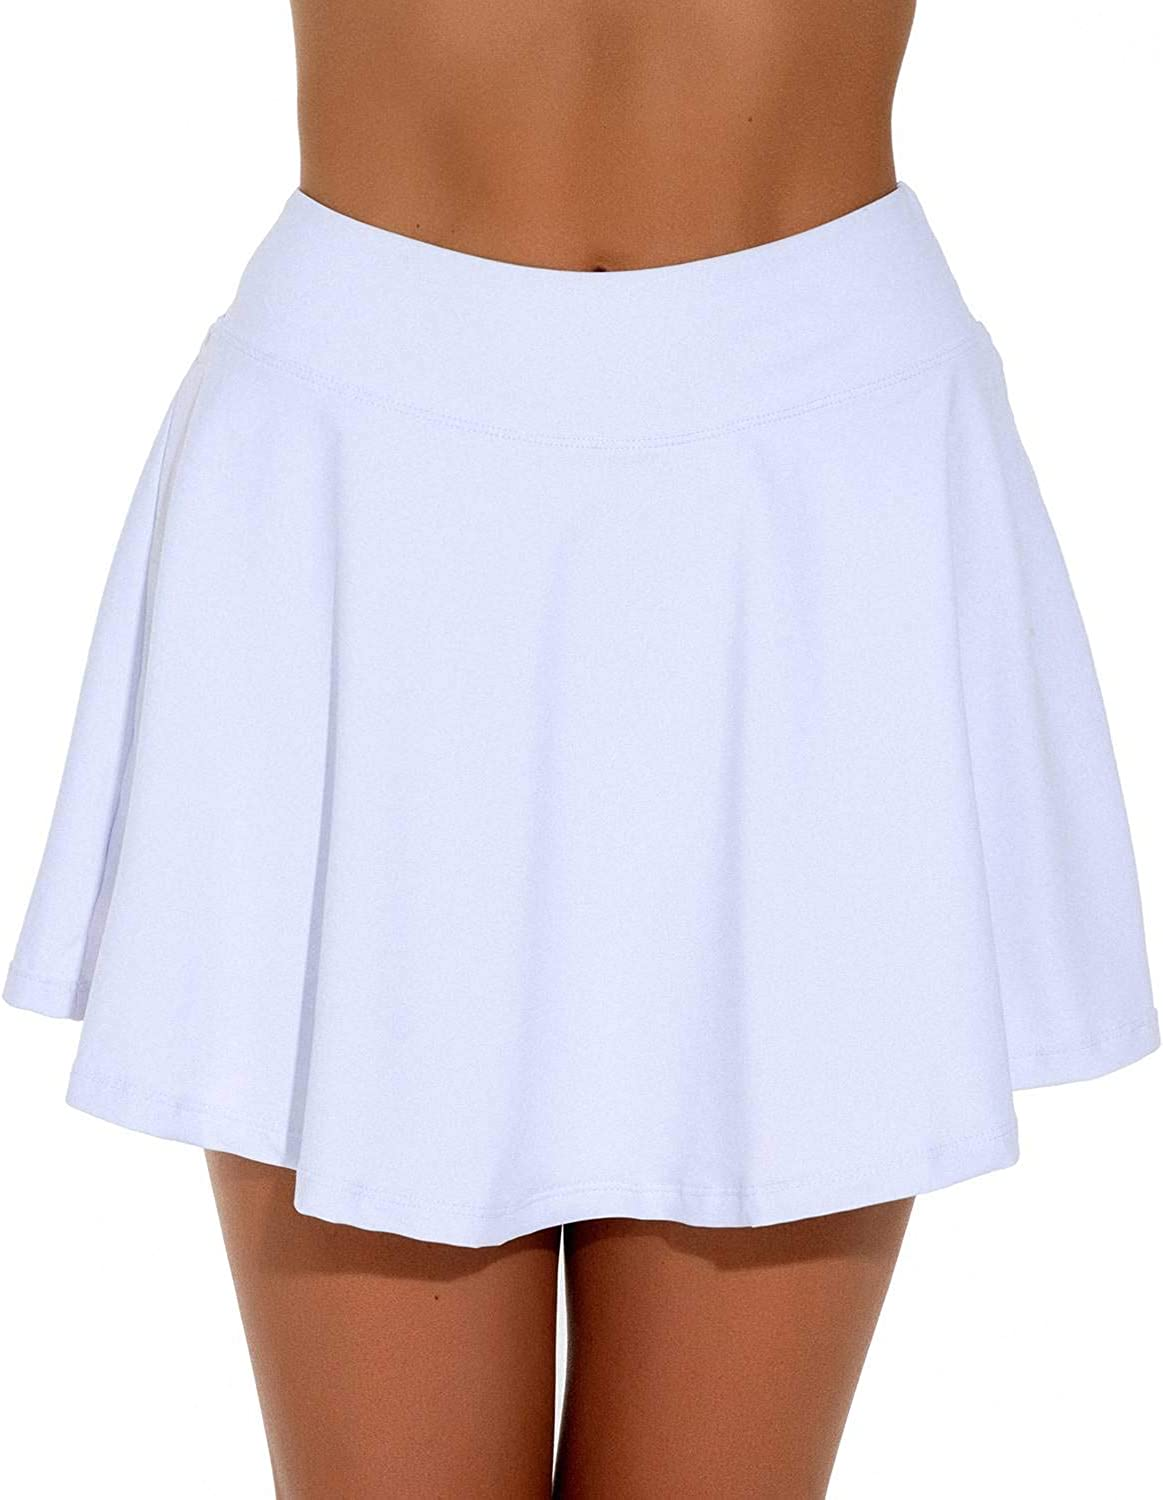 STYLEZONE Women's Skorts Pleated Cute Skirts Sports Shorts with Pocket for Running Tennis Golf Workout: Clothing